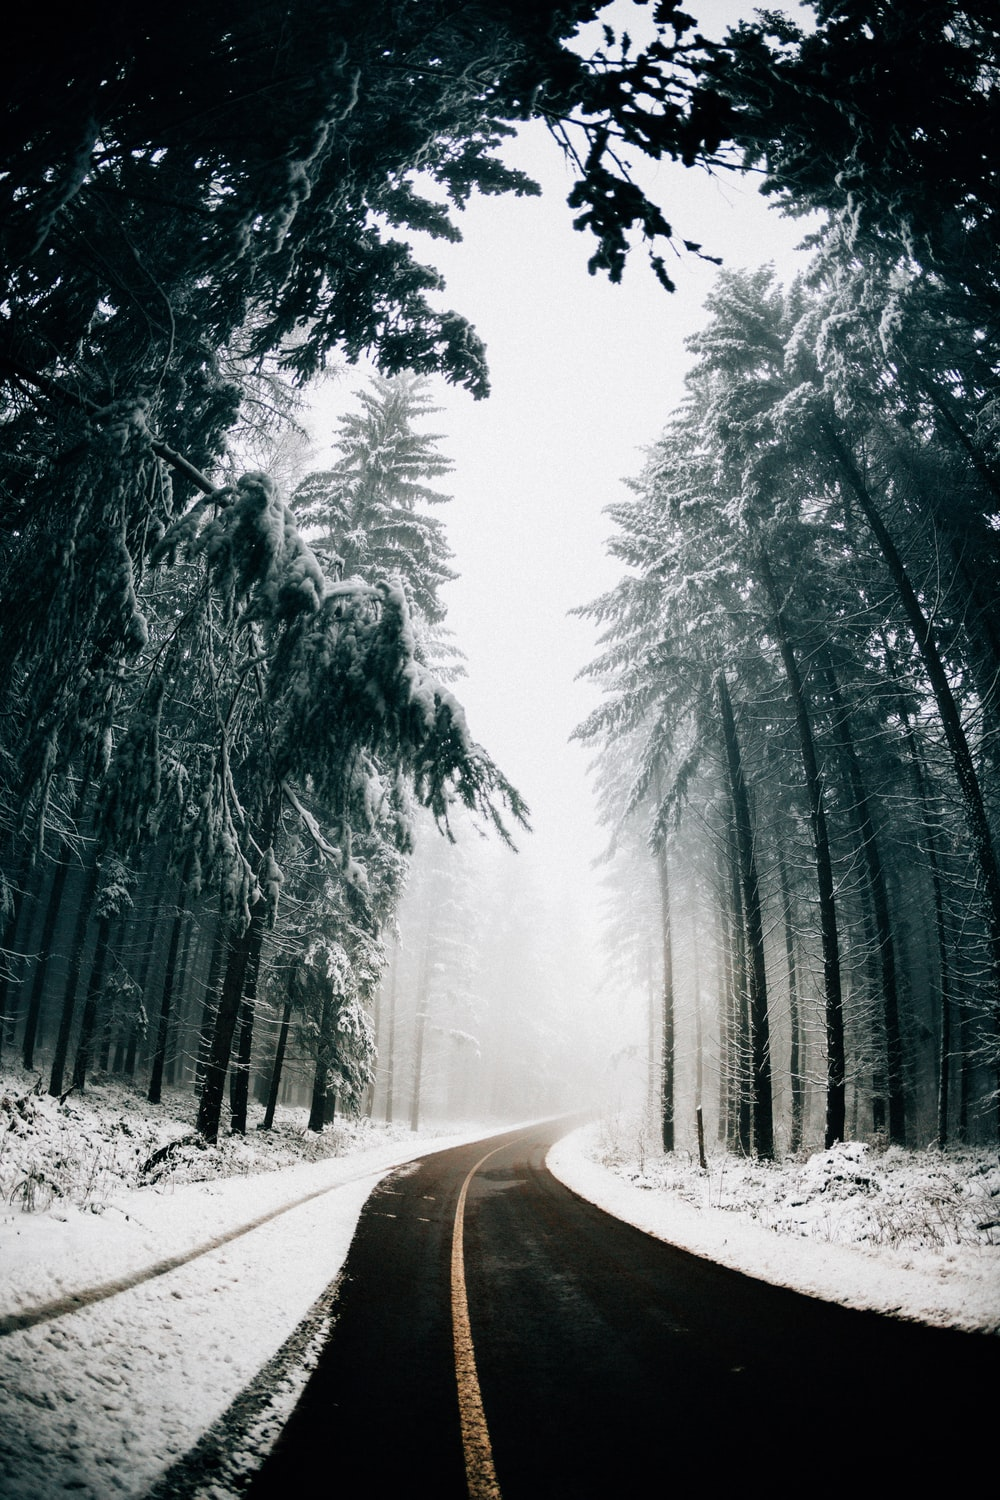 asphalt road in between trees covered with snow